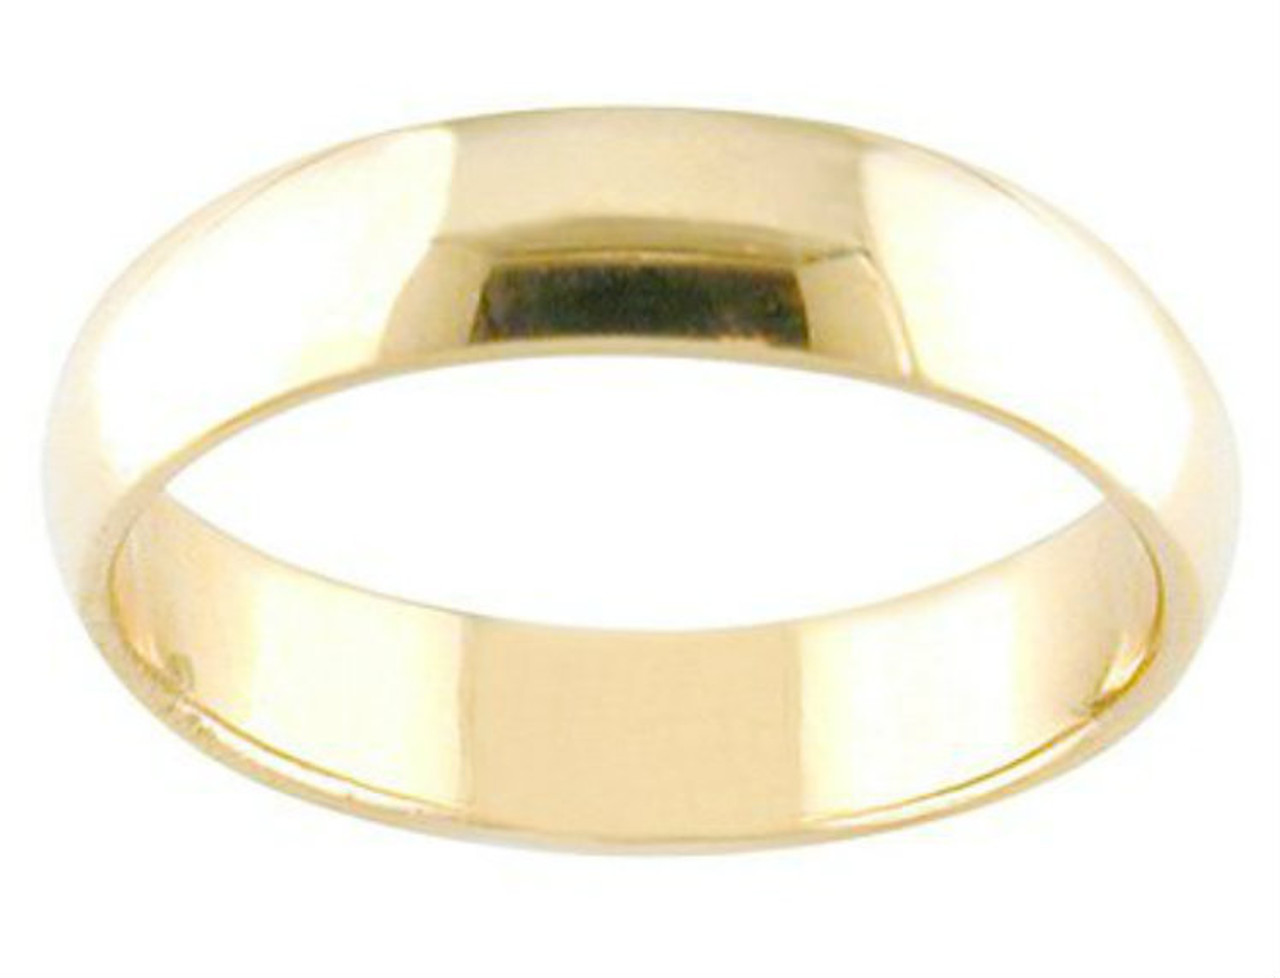 edff04aaacd6b 14k gold thick band thumb ring finger ring